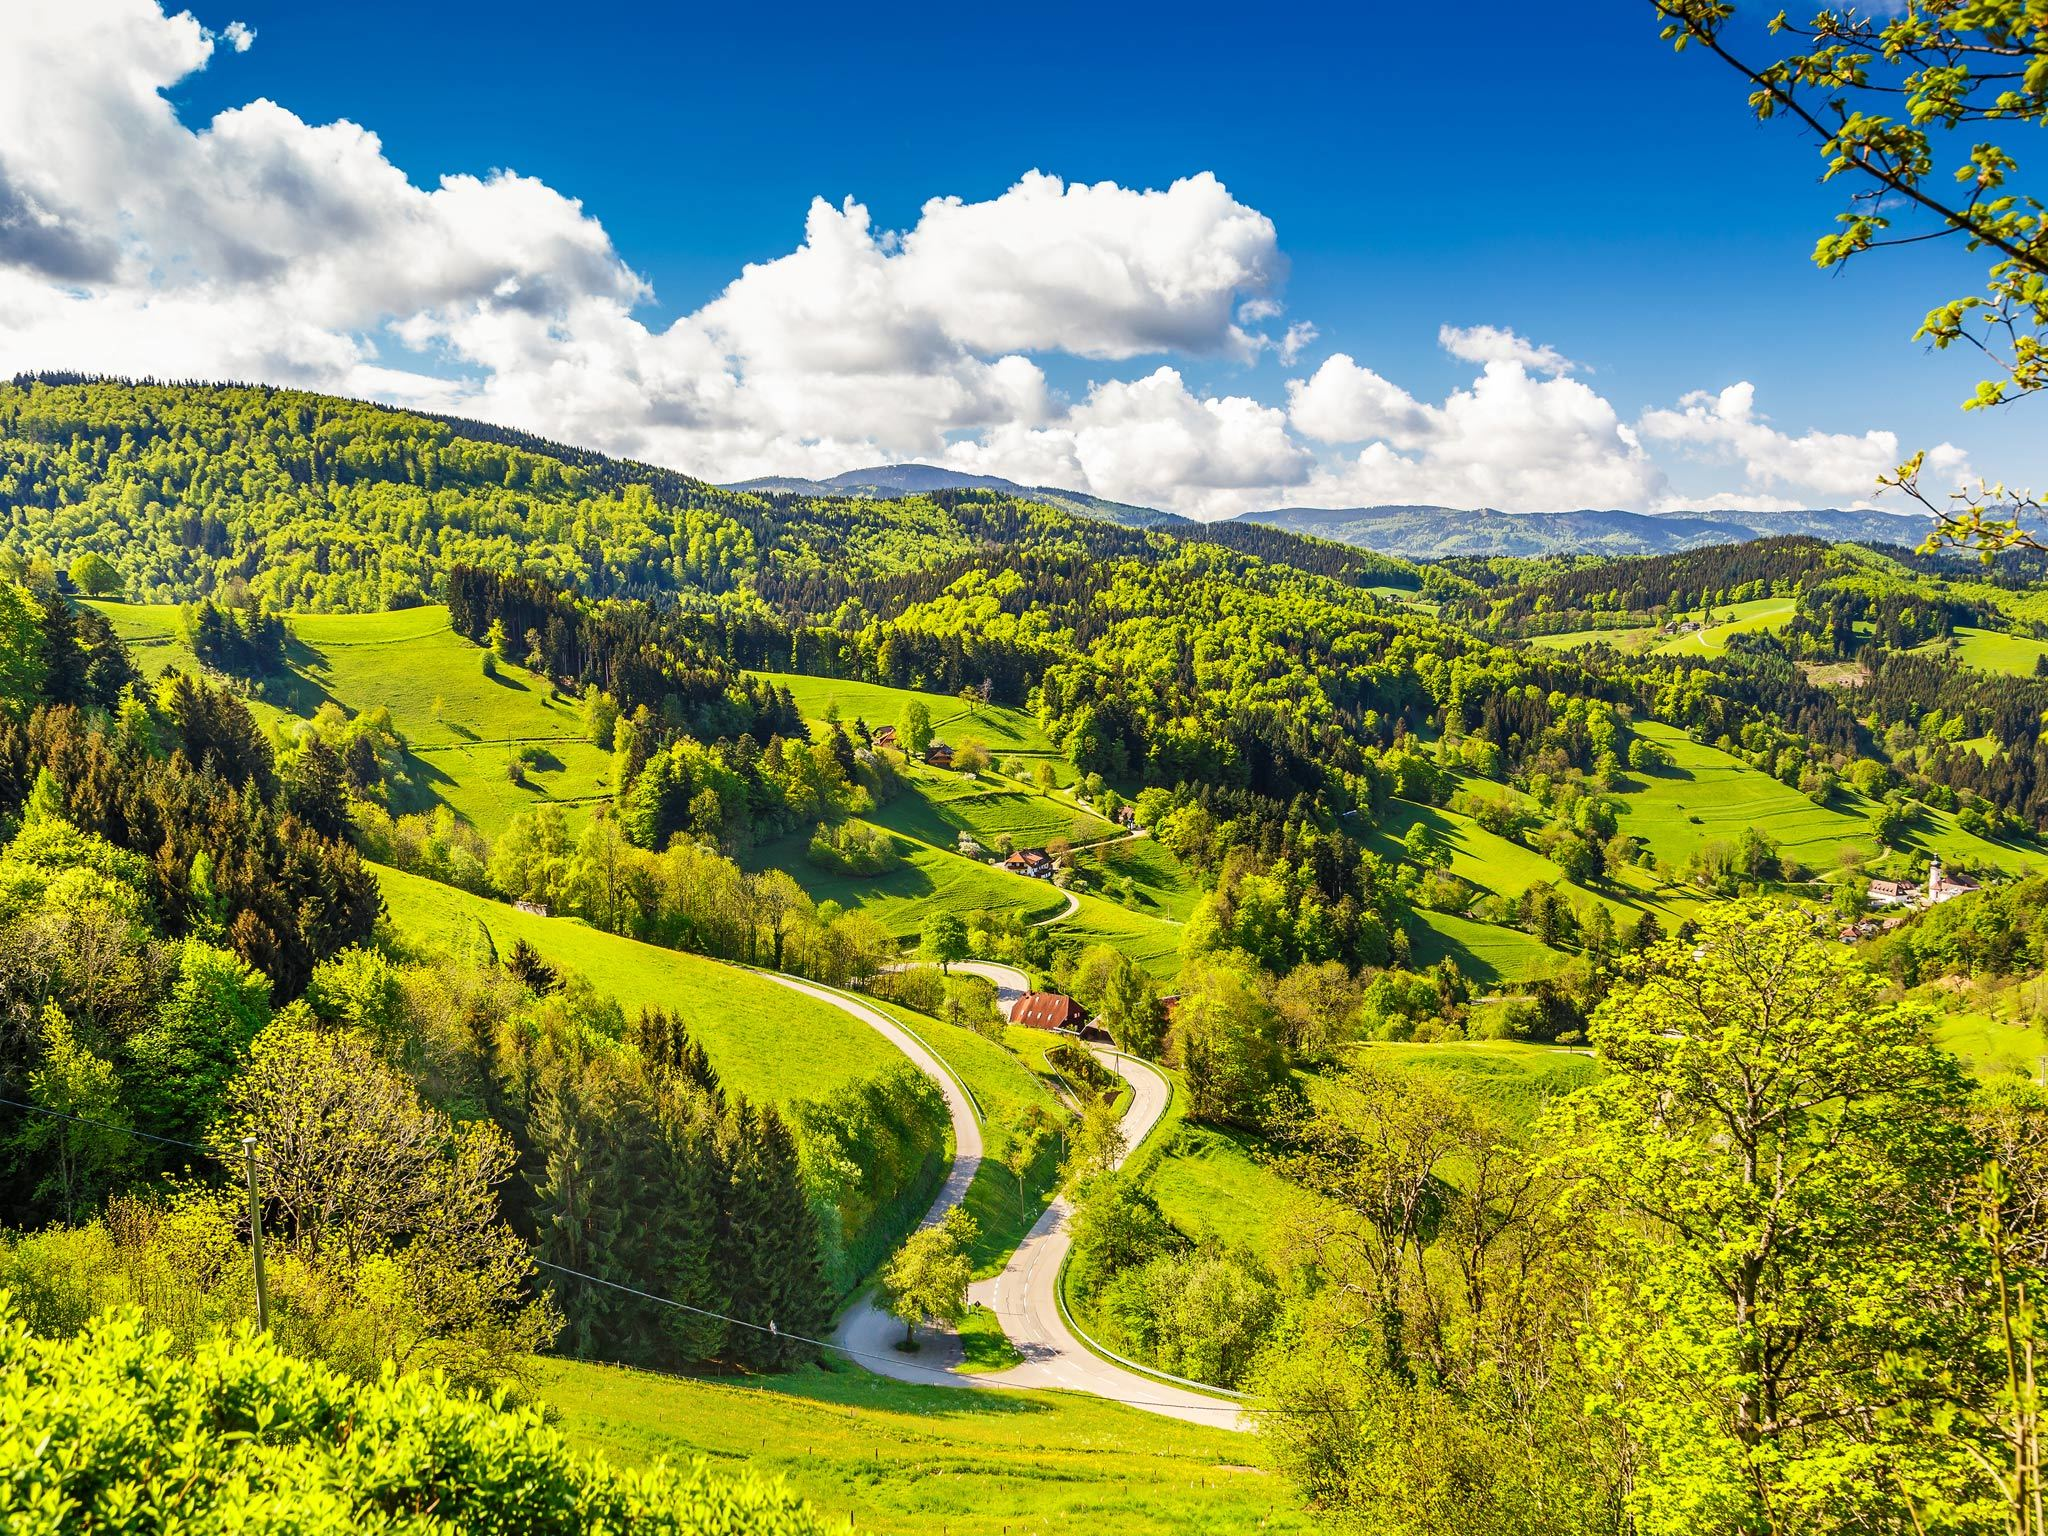 Rolling hills in the Black Forest region of Germany